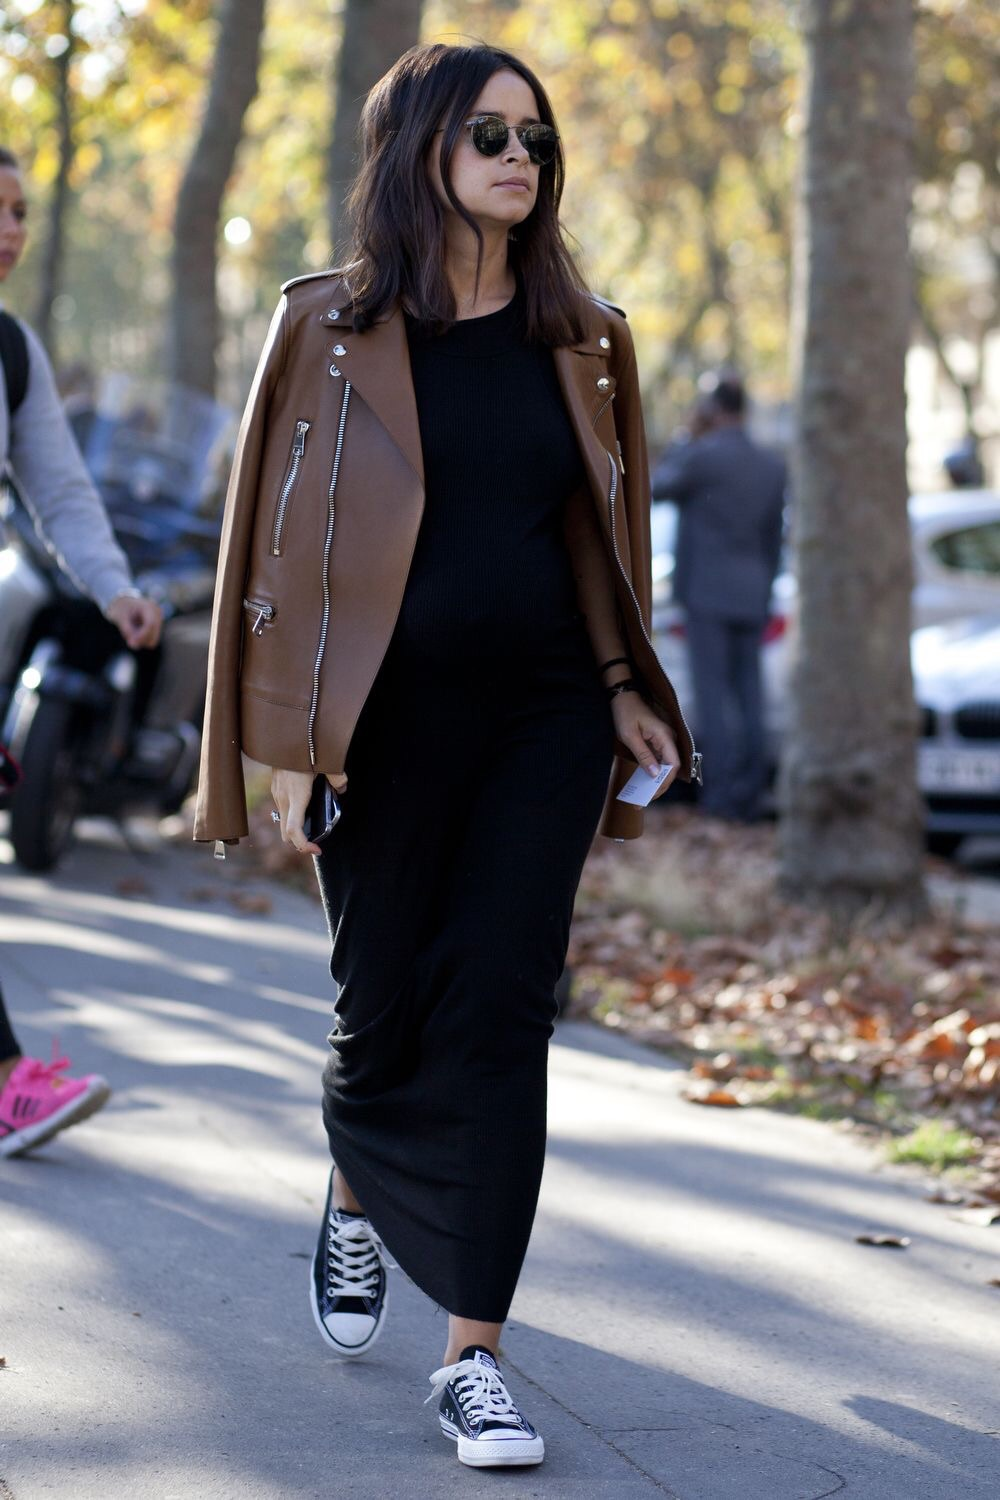 Black, leather, and Chuck Taylors! Love it!!! This is probably my preferred style everyday. (Image Source: instagram.com, @matchesfashion